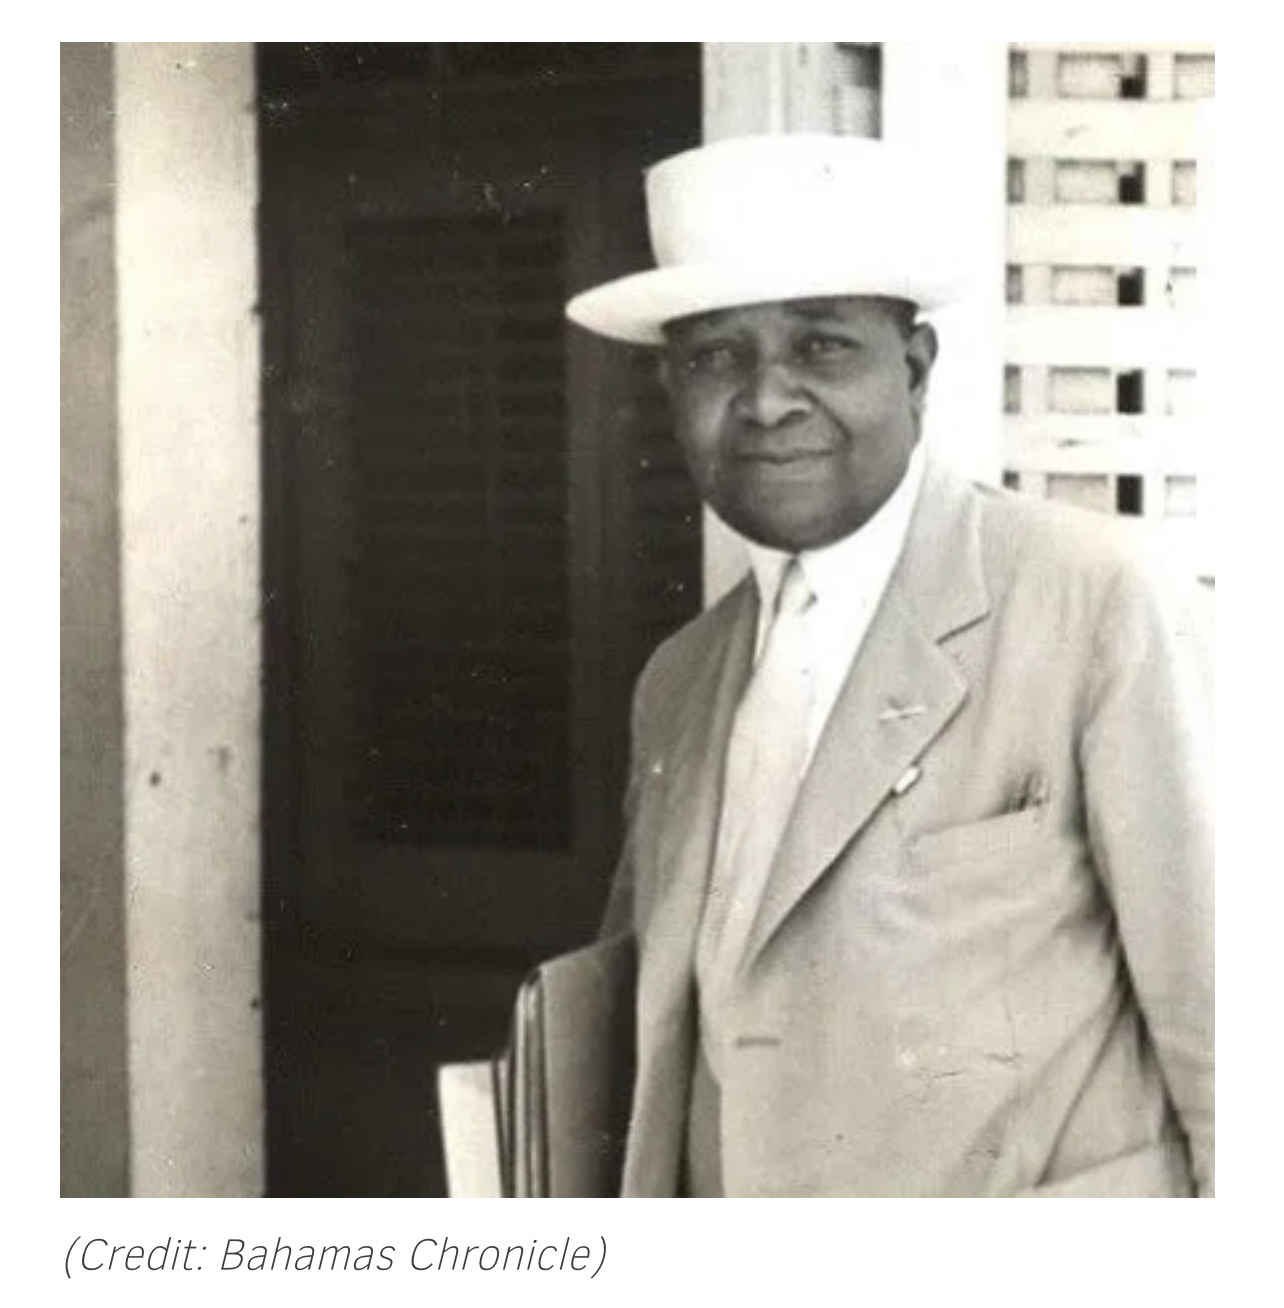 Earliest Black Student at St. Catherine's College Cambridge was Bahamian Alfred Francis Adderley 1912